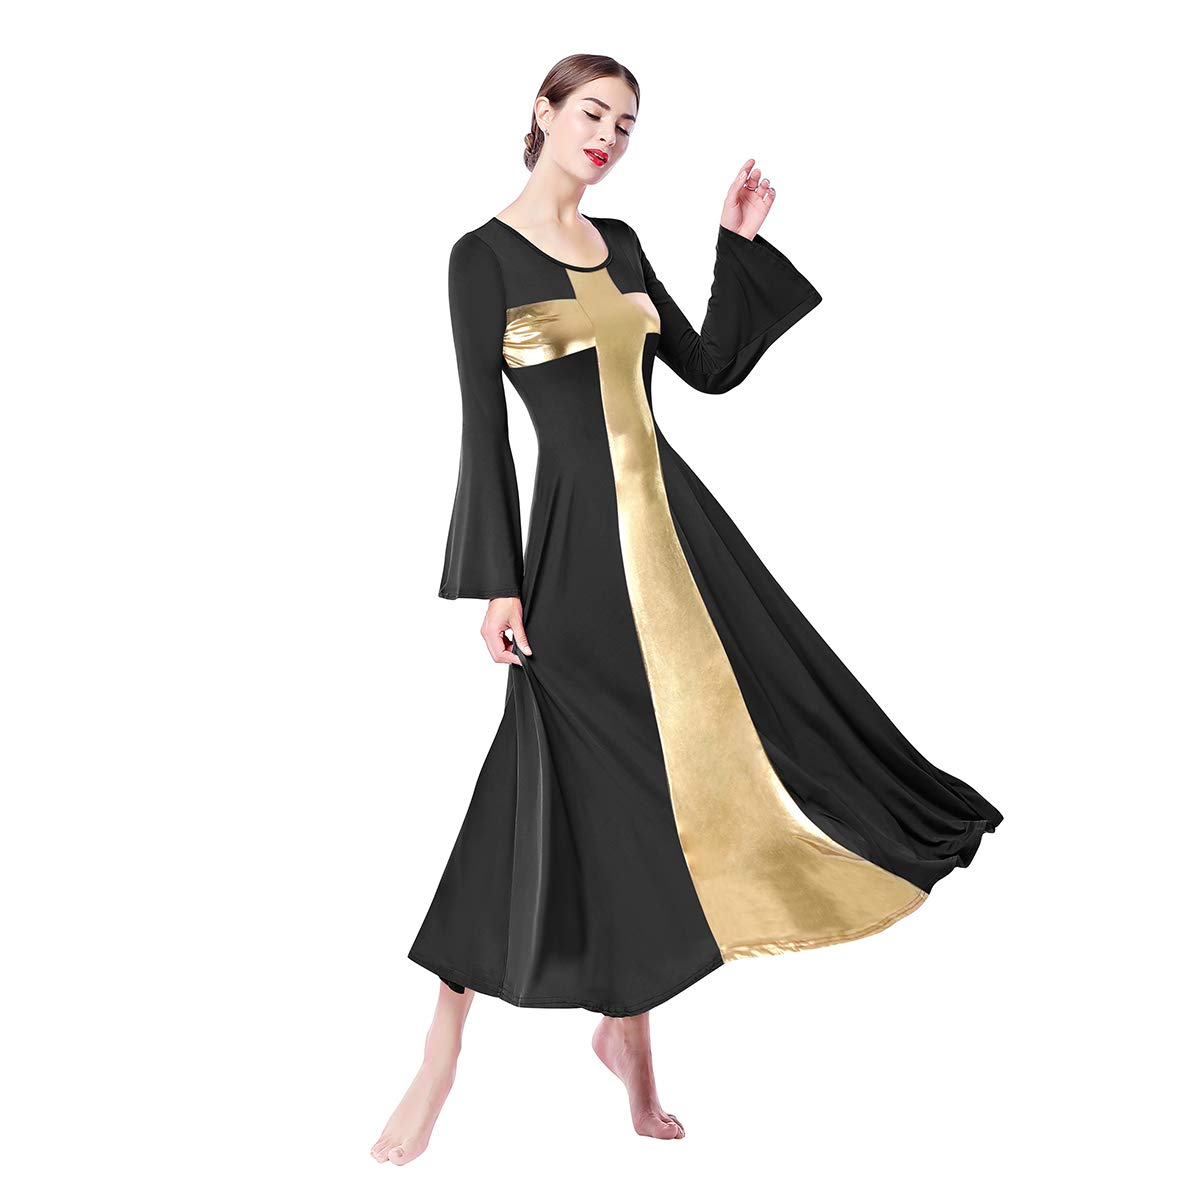 facdfc61a Amazon.com: Womens Metallic Color Block Liturgical Dancewear Praise Robe  Cross Workout Dance Dress Long Sleeve Costume: Clothing